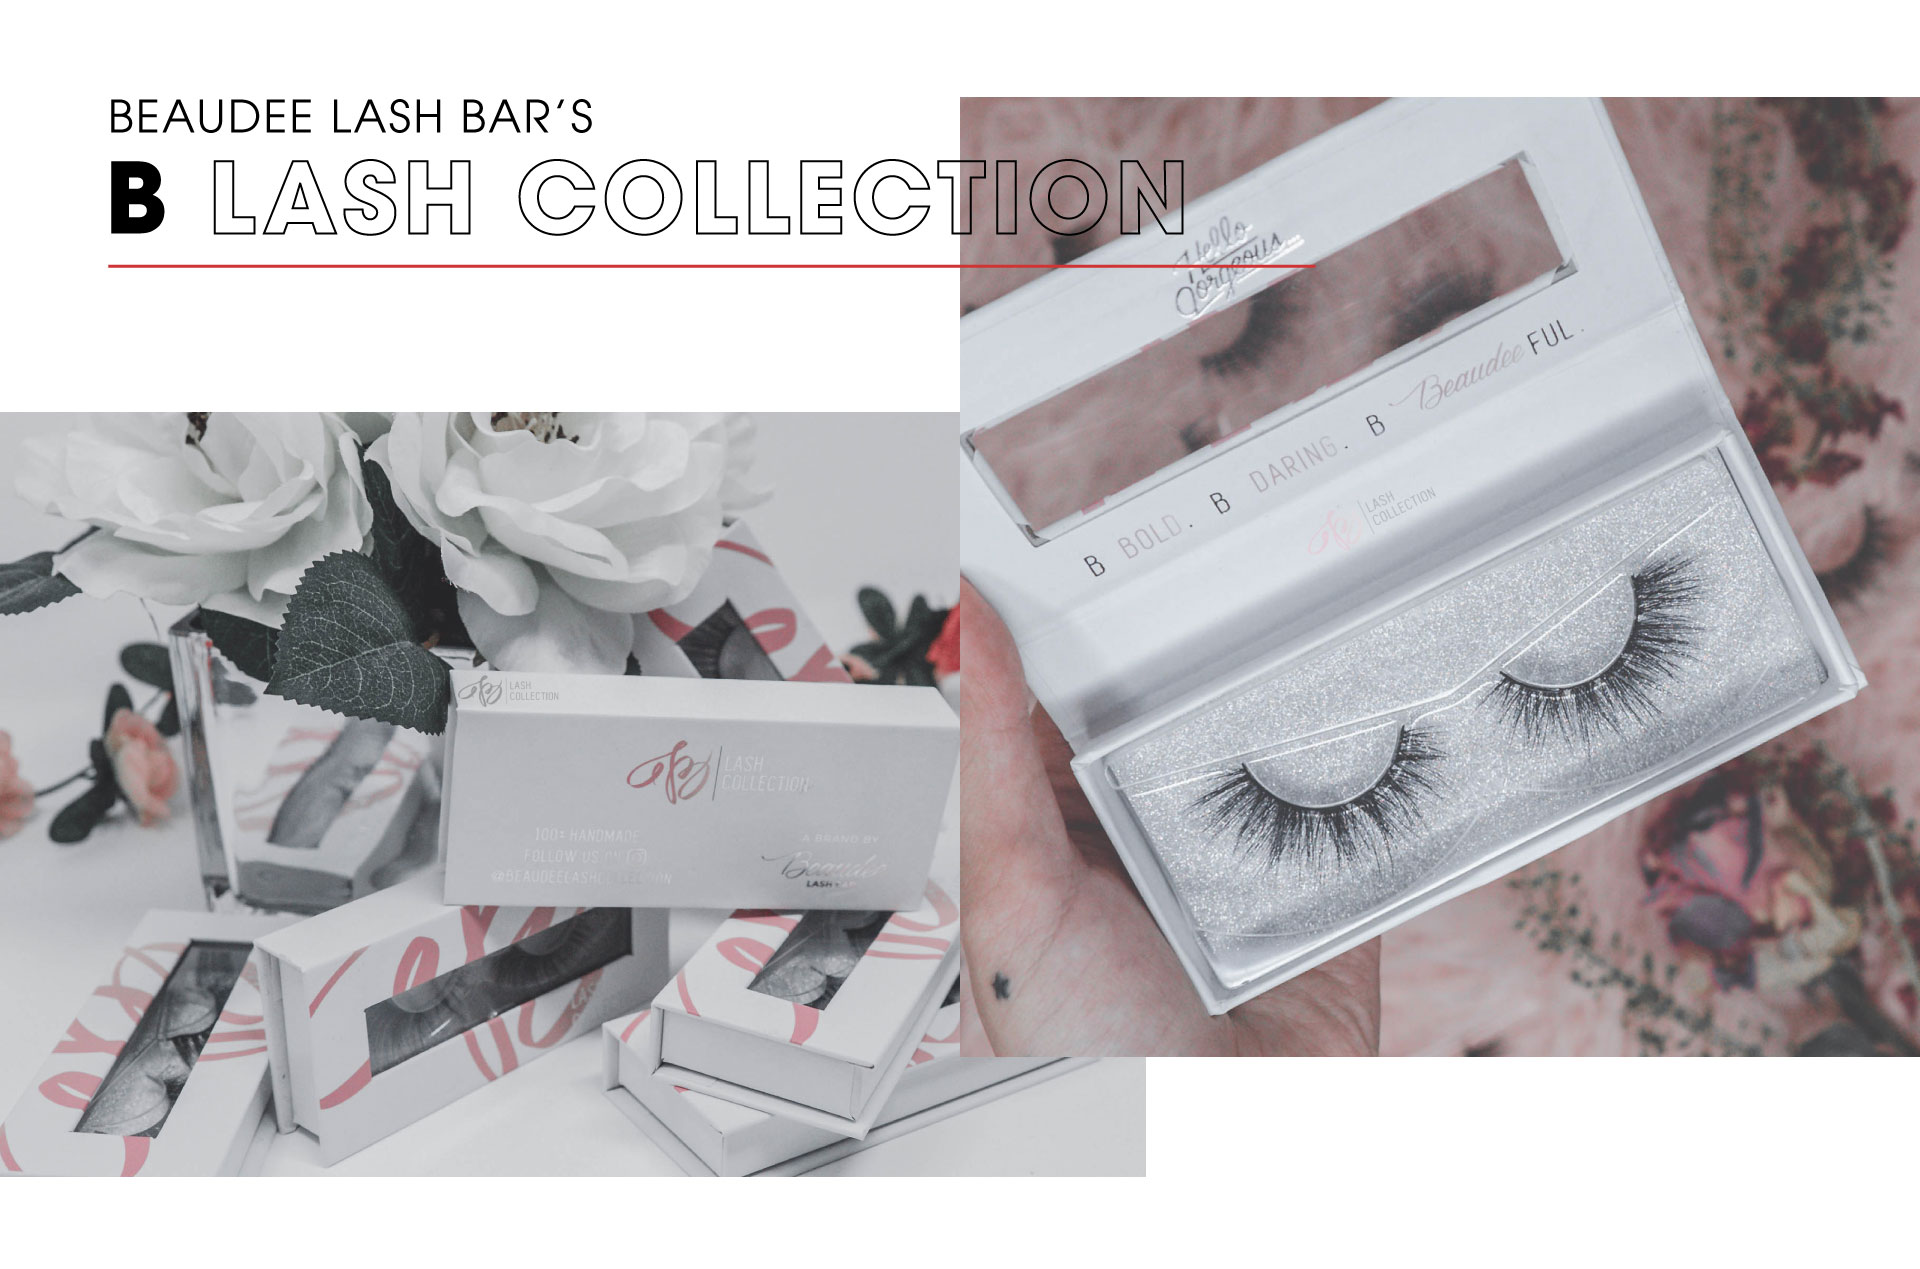 Beaudee Lash Bar – The Premiere Lash Extension Boutique in Philadelphia